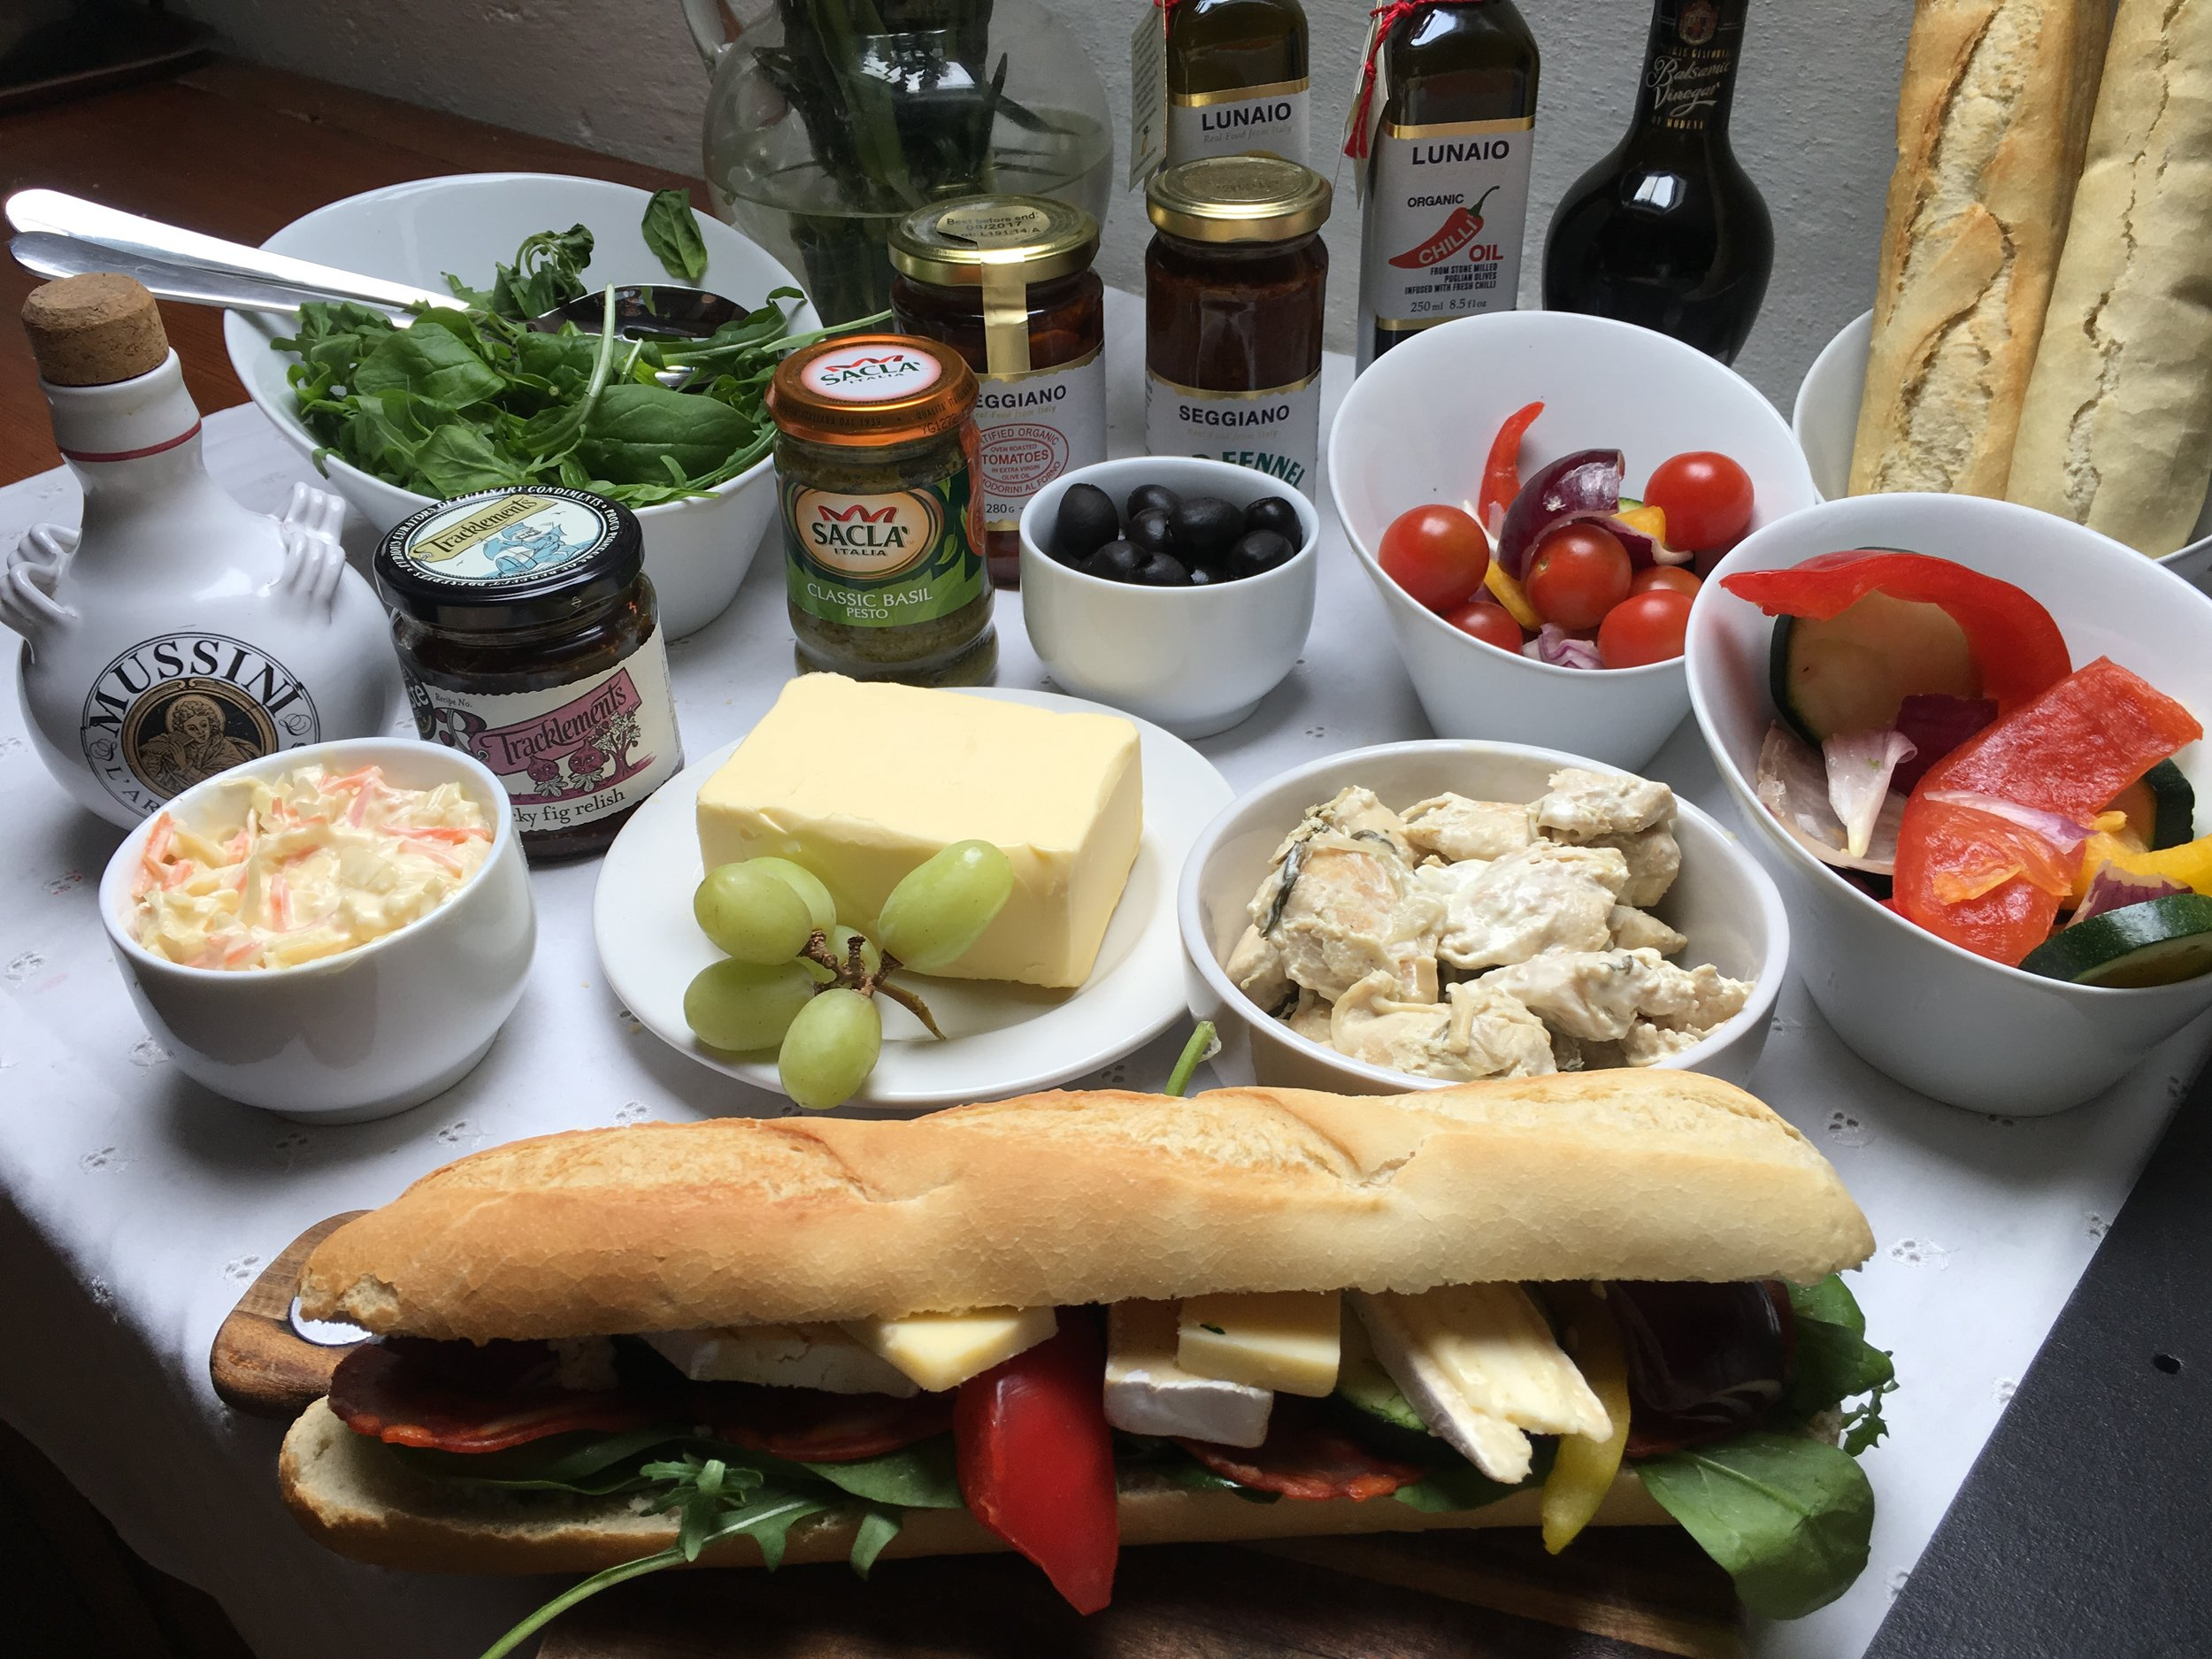 Saturday lunch time  Make your own panini – commercial panini maker available, plus all you need for a scrumptious lunch – homemade roast veg, humus, cheese, chorizo, ham, artichoke hearts, onion marmalade.